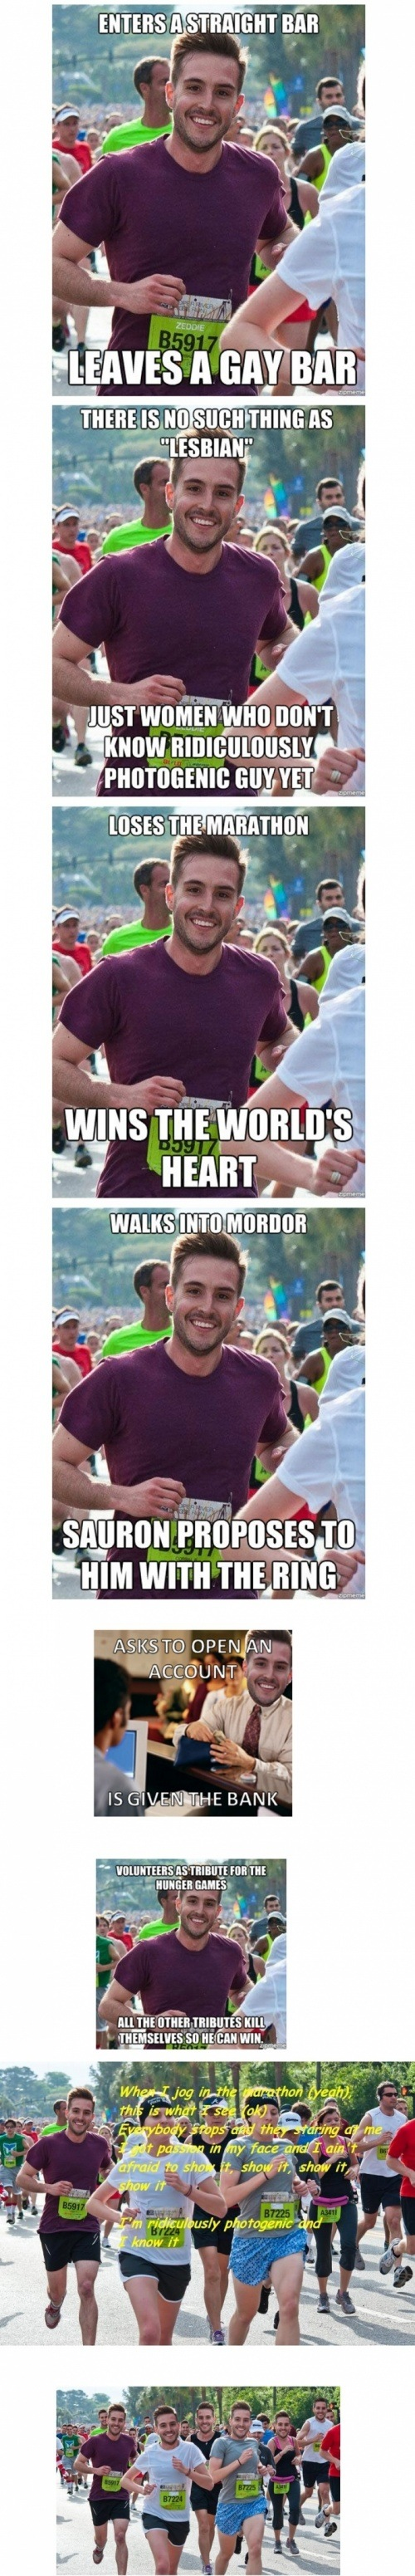 Ridiculously Photogenic Guy is Photogenic